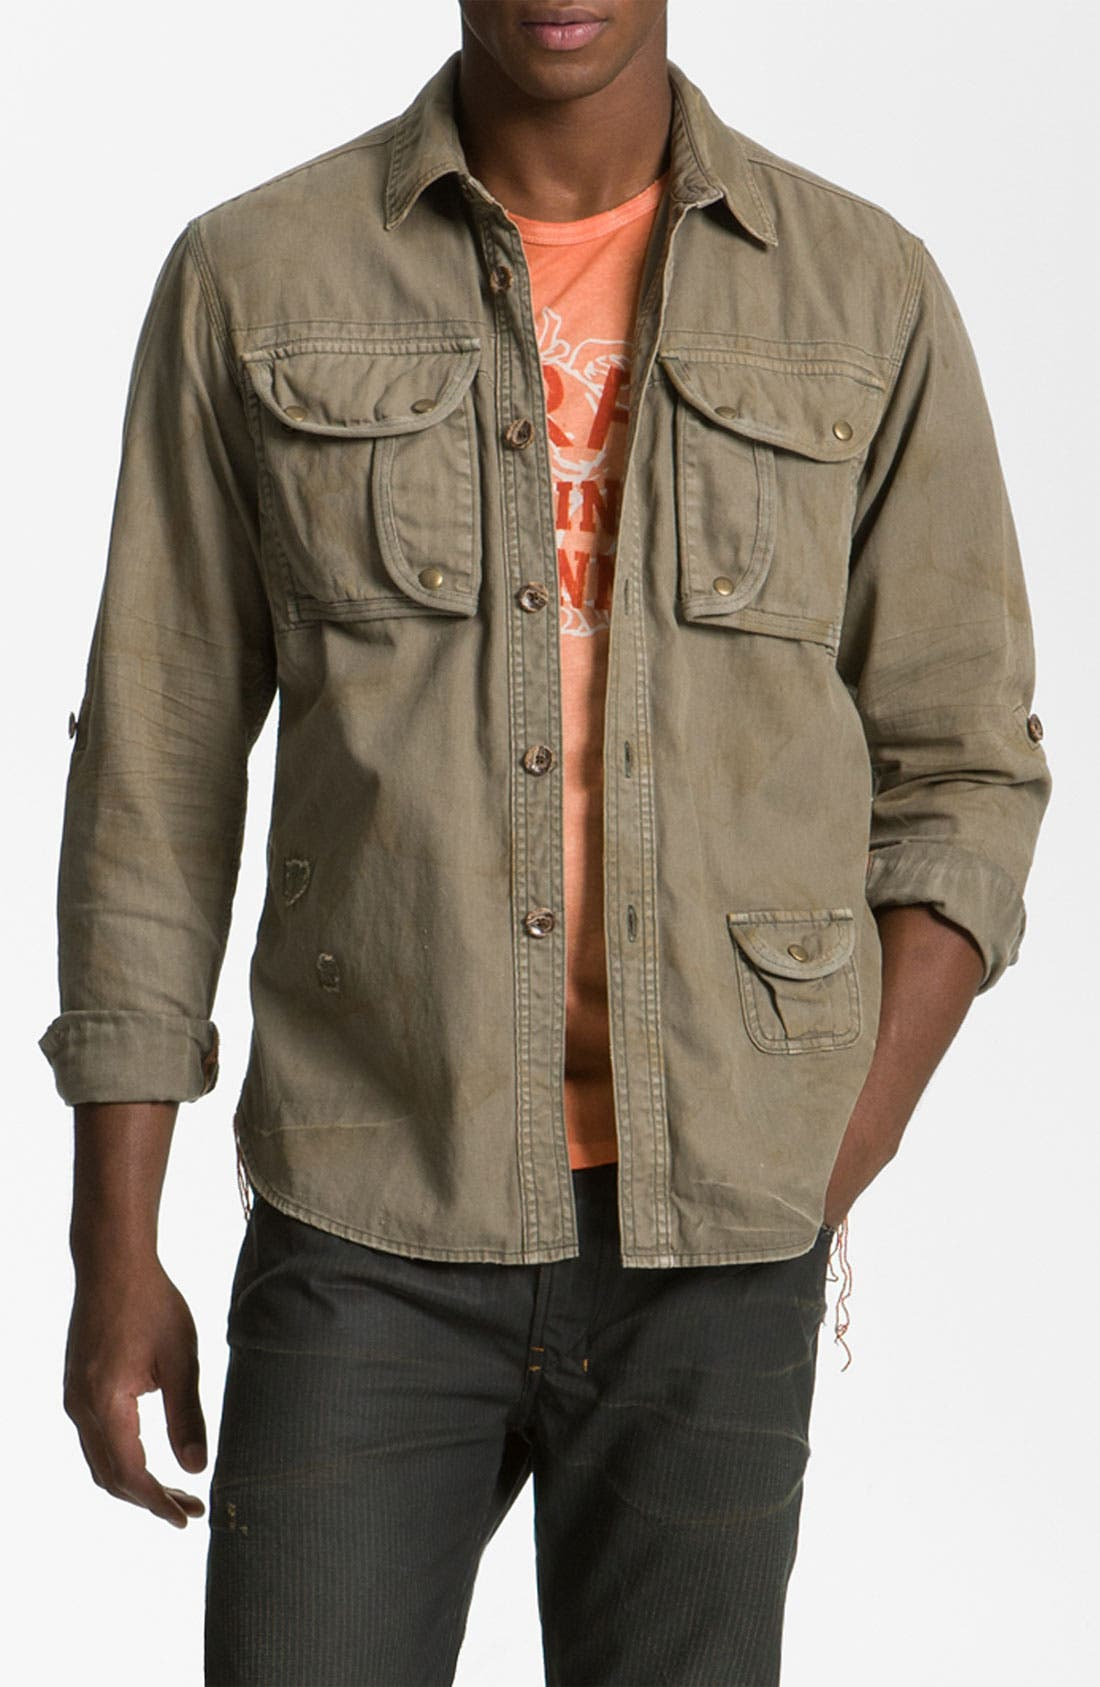 Alternate Image 1 Selected - PRPS Woven Utility Shirt